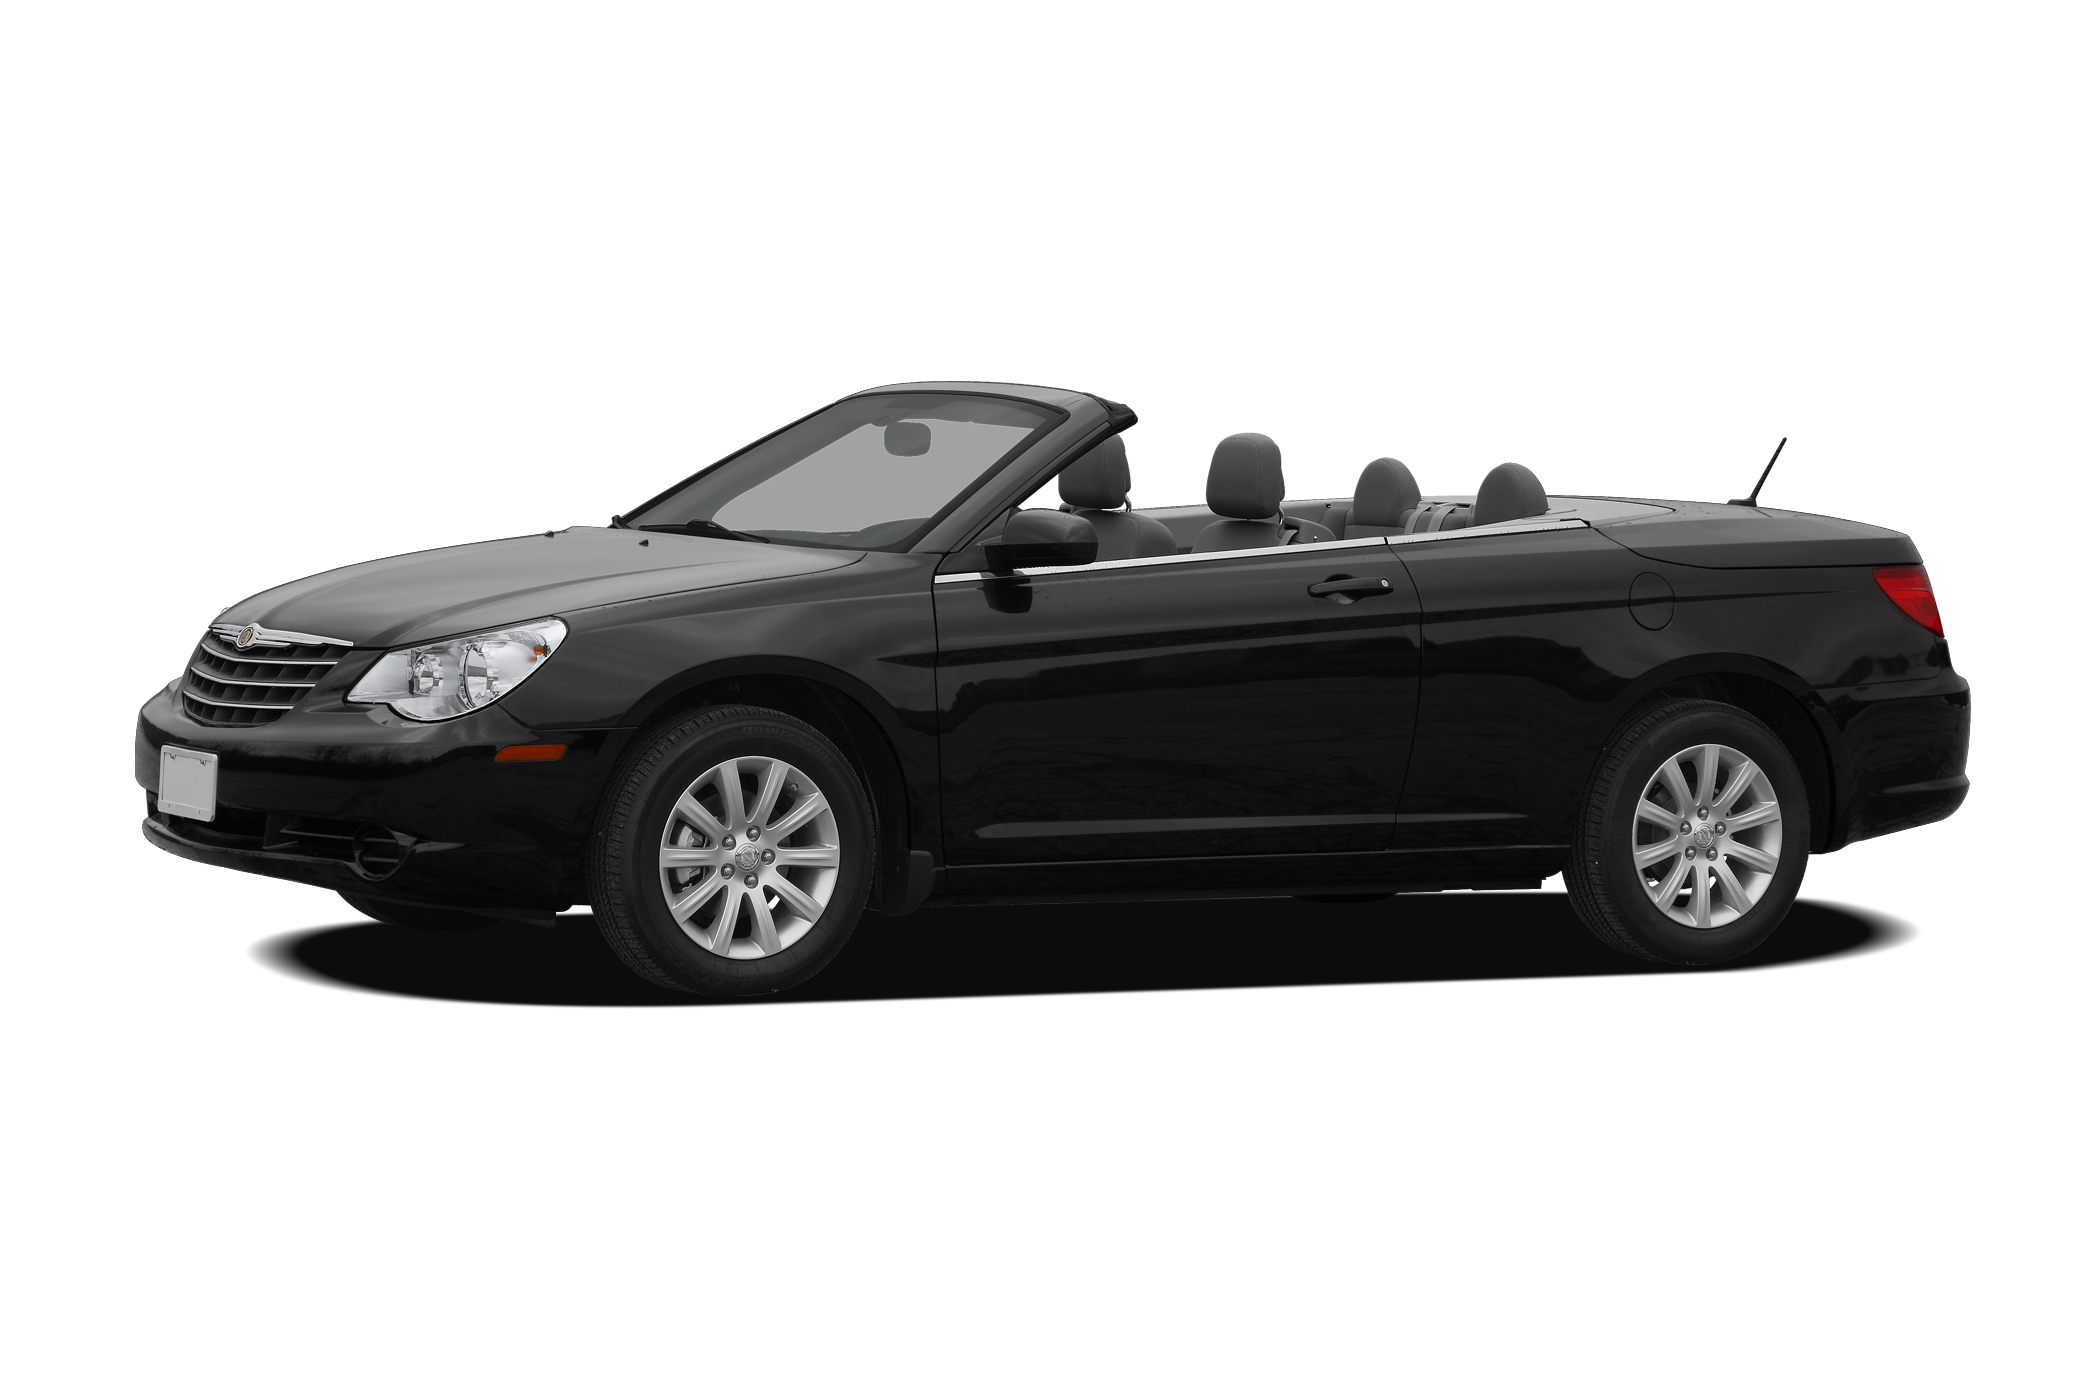 2010 Chrysler Sebring Touring LEATHER AND LOADED CONVERTIBLE MULLINAX CERTIFIED PRE-OWNED means